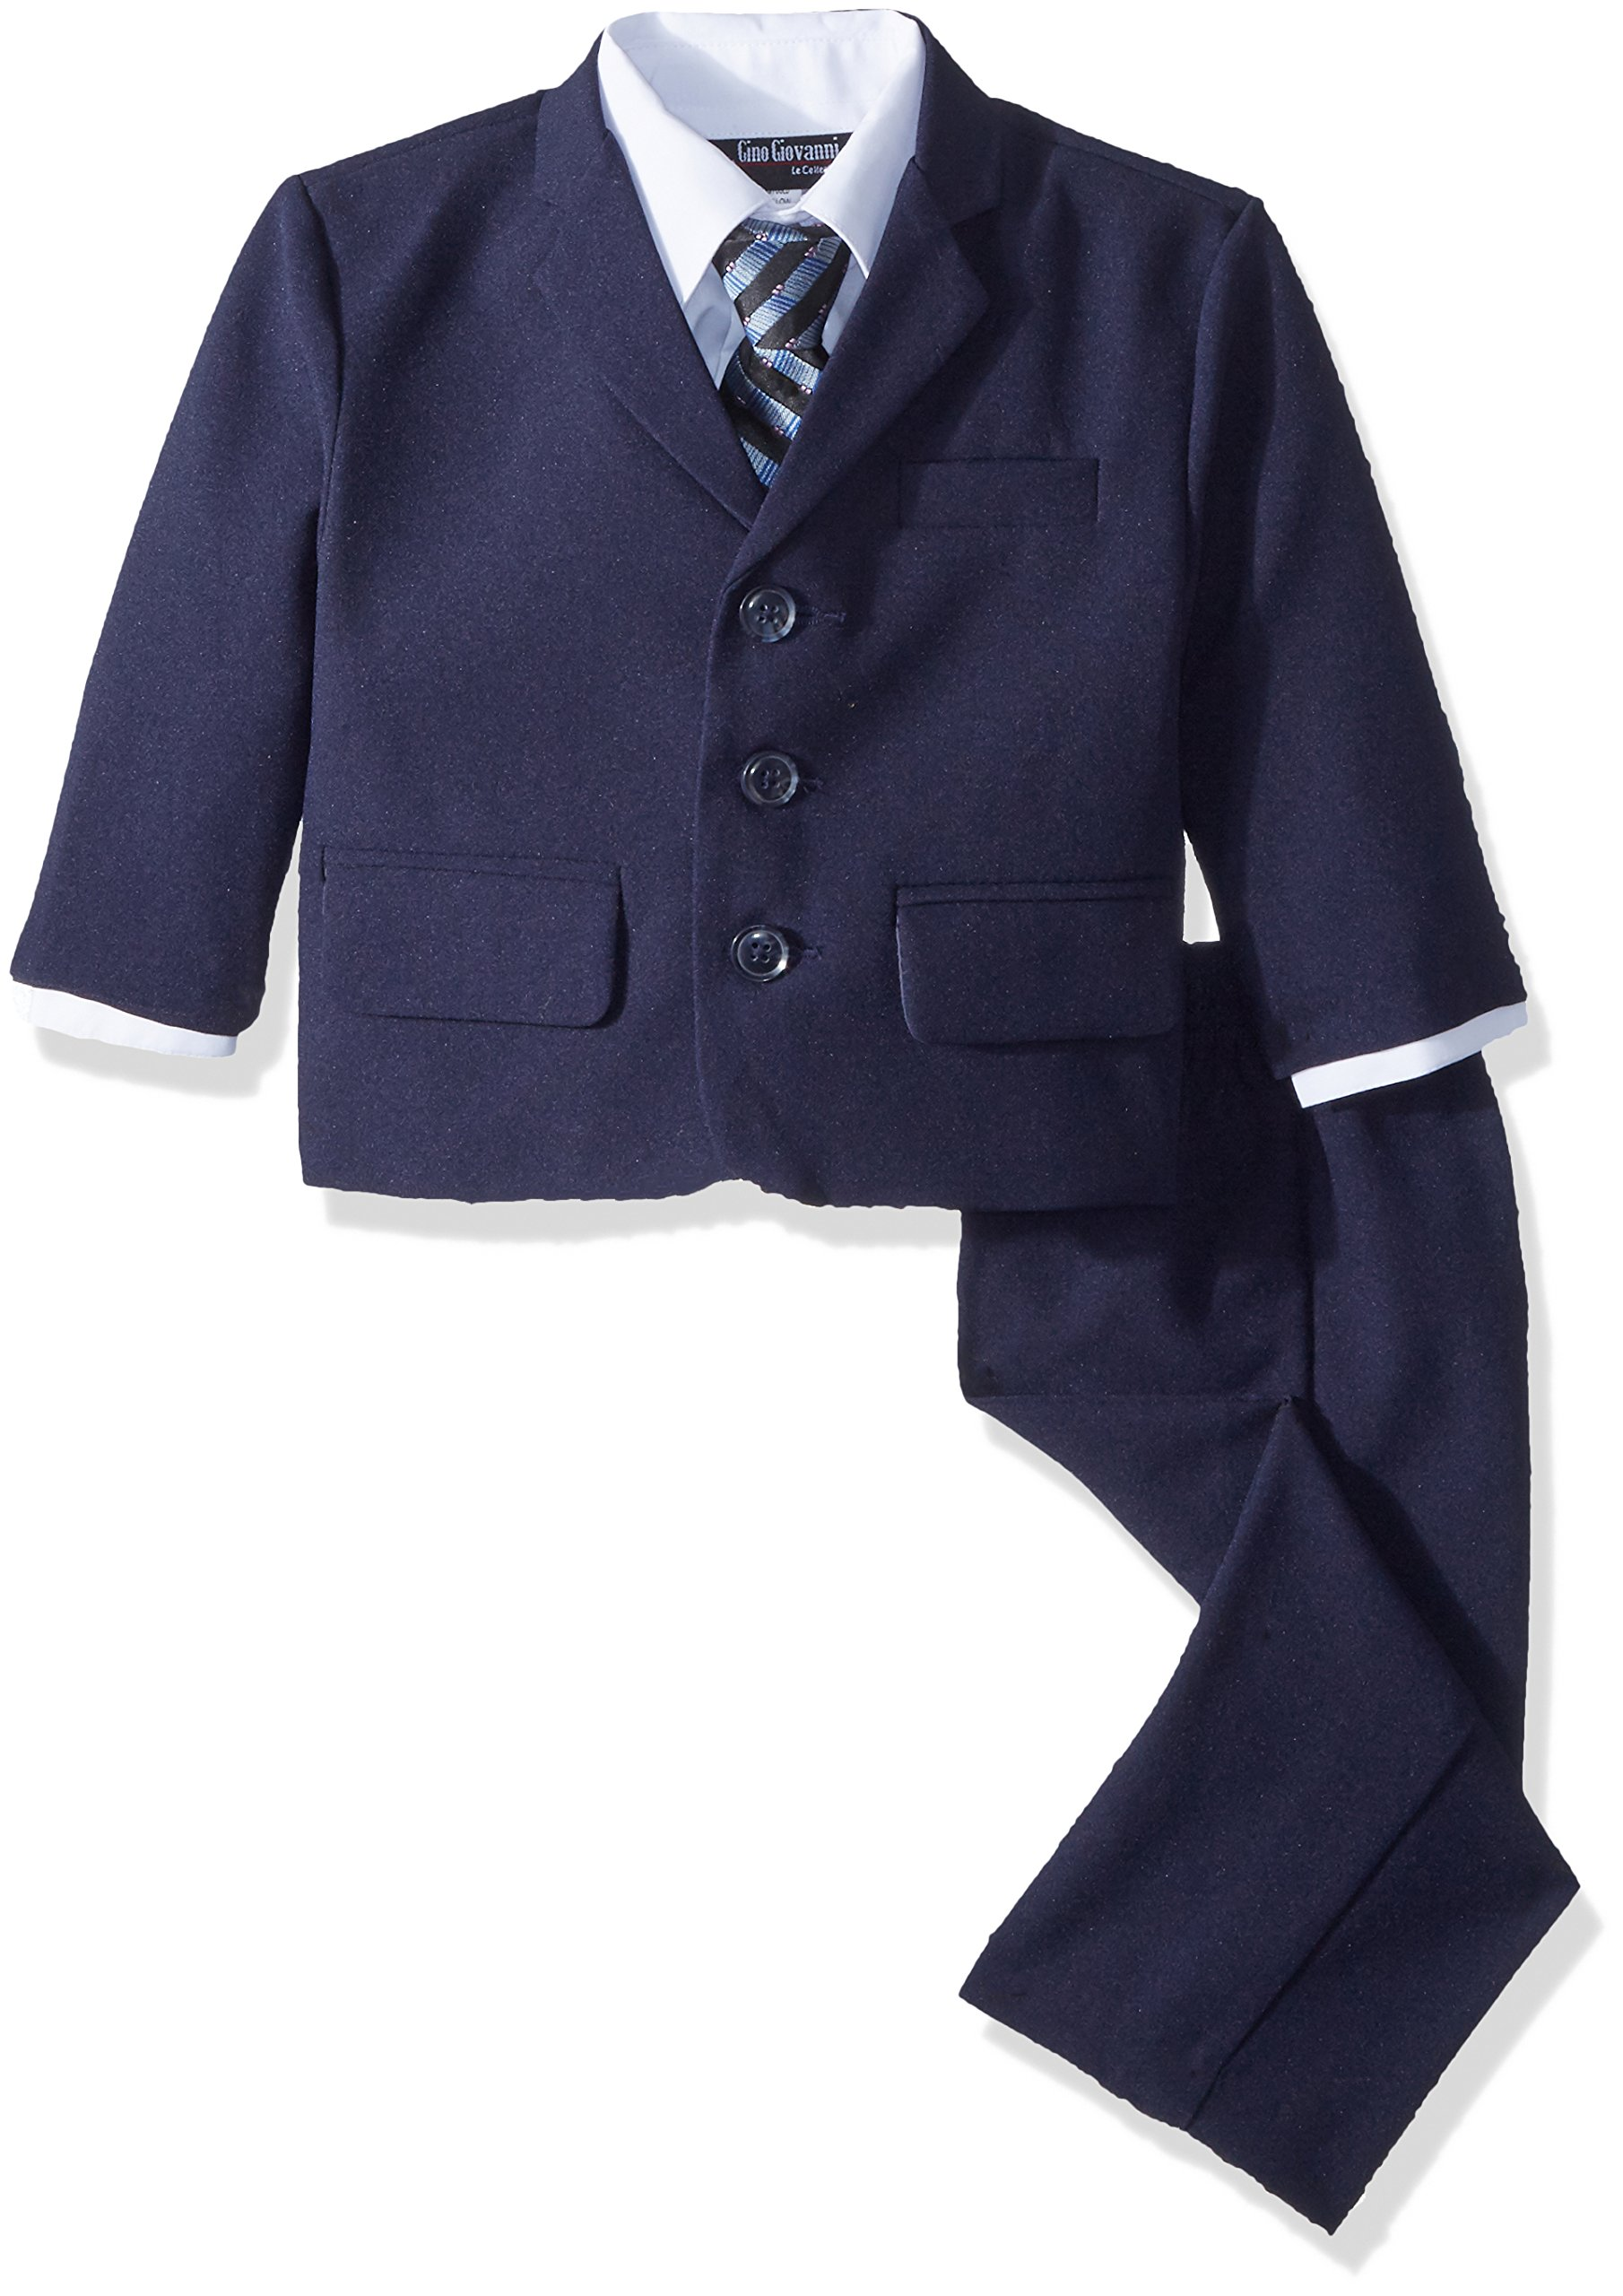 d20c75f28 Cheap Boys Navy Blue Suit, find Boys Navy Blue Suit deals on line at ...